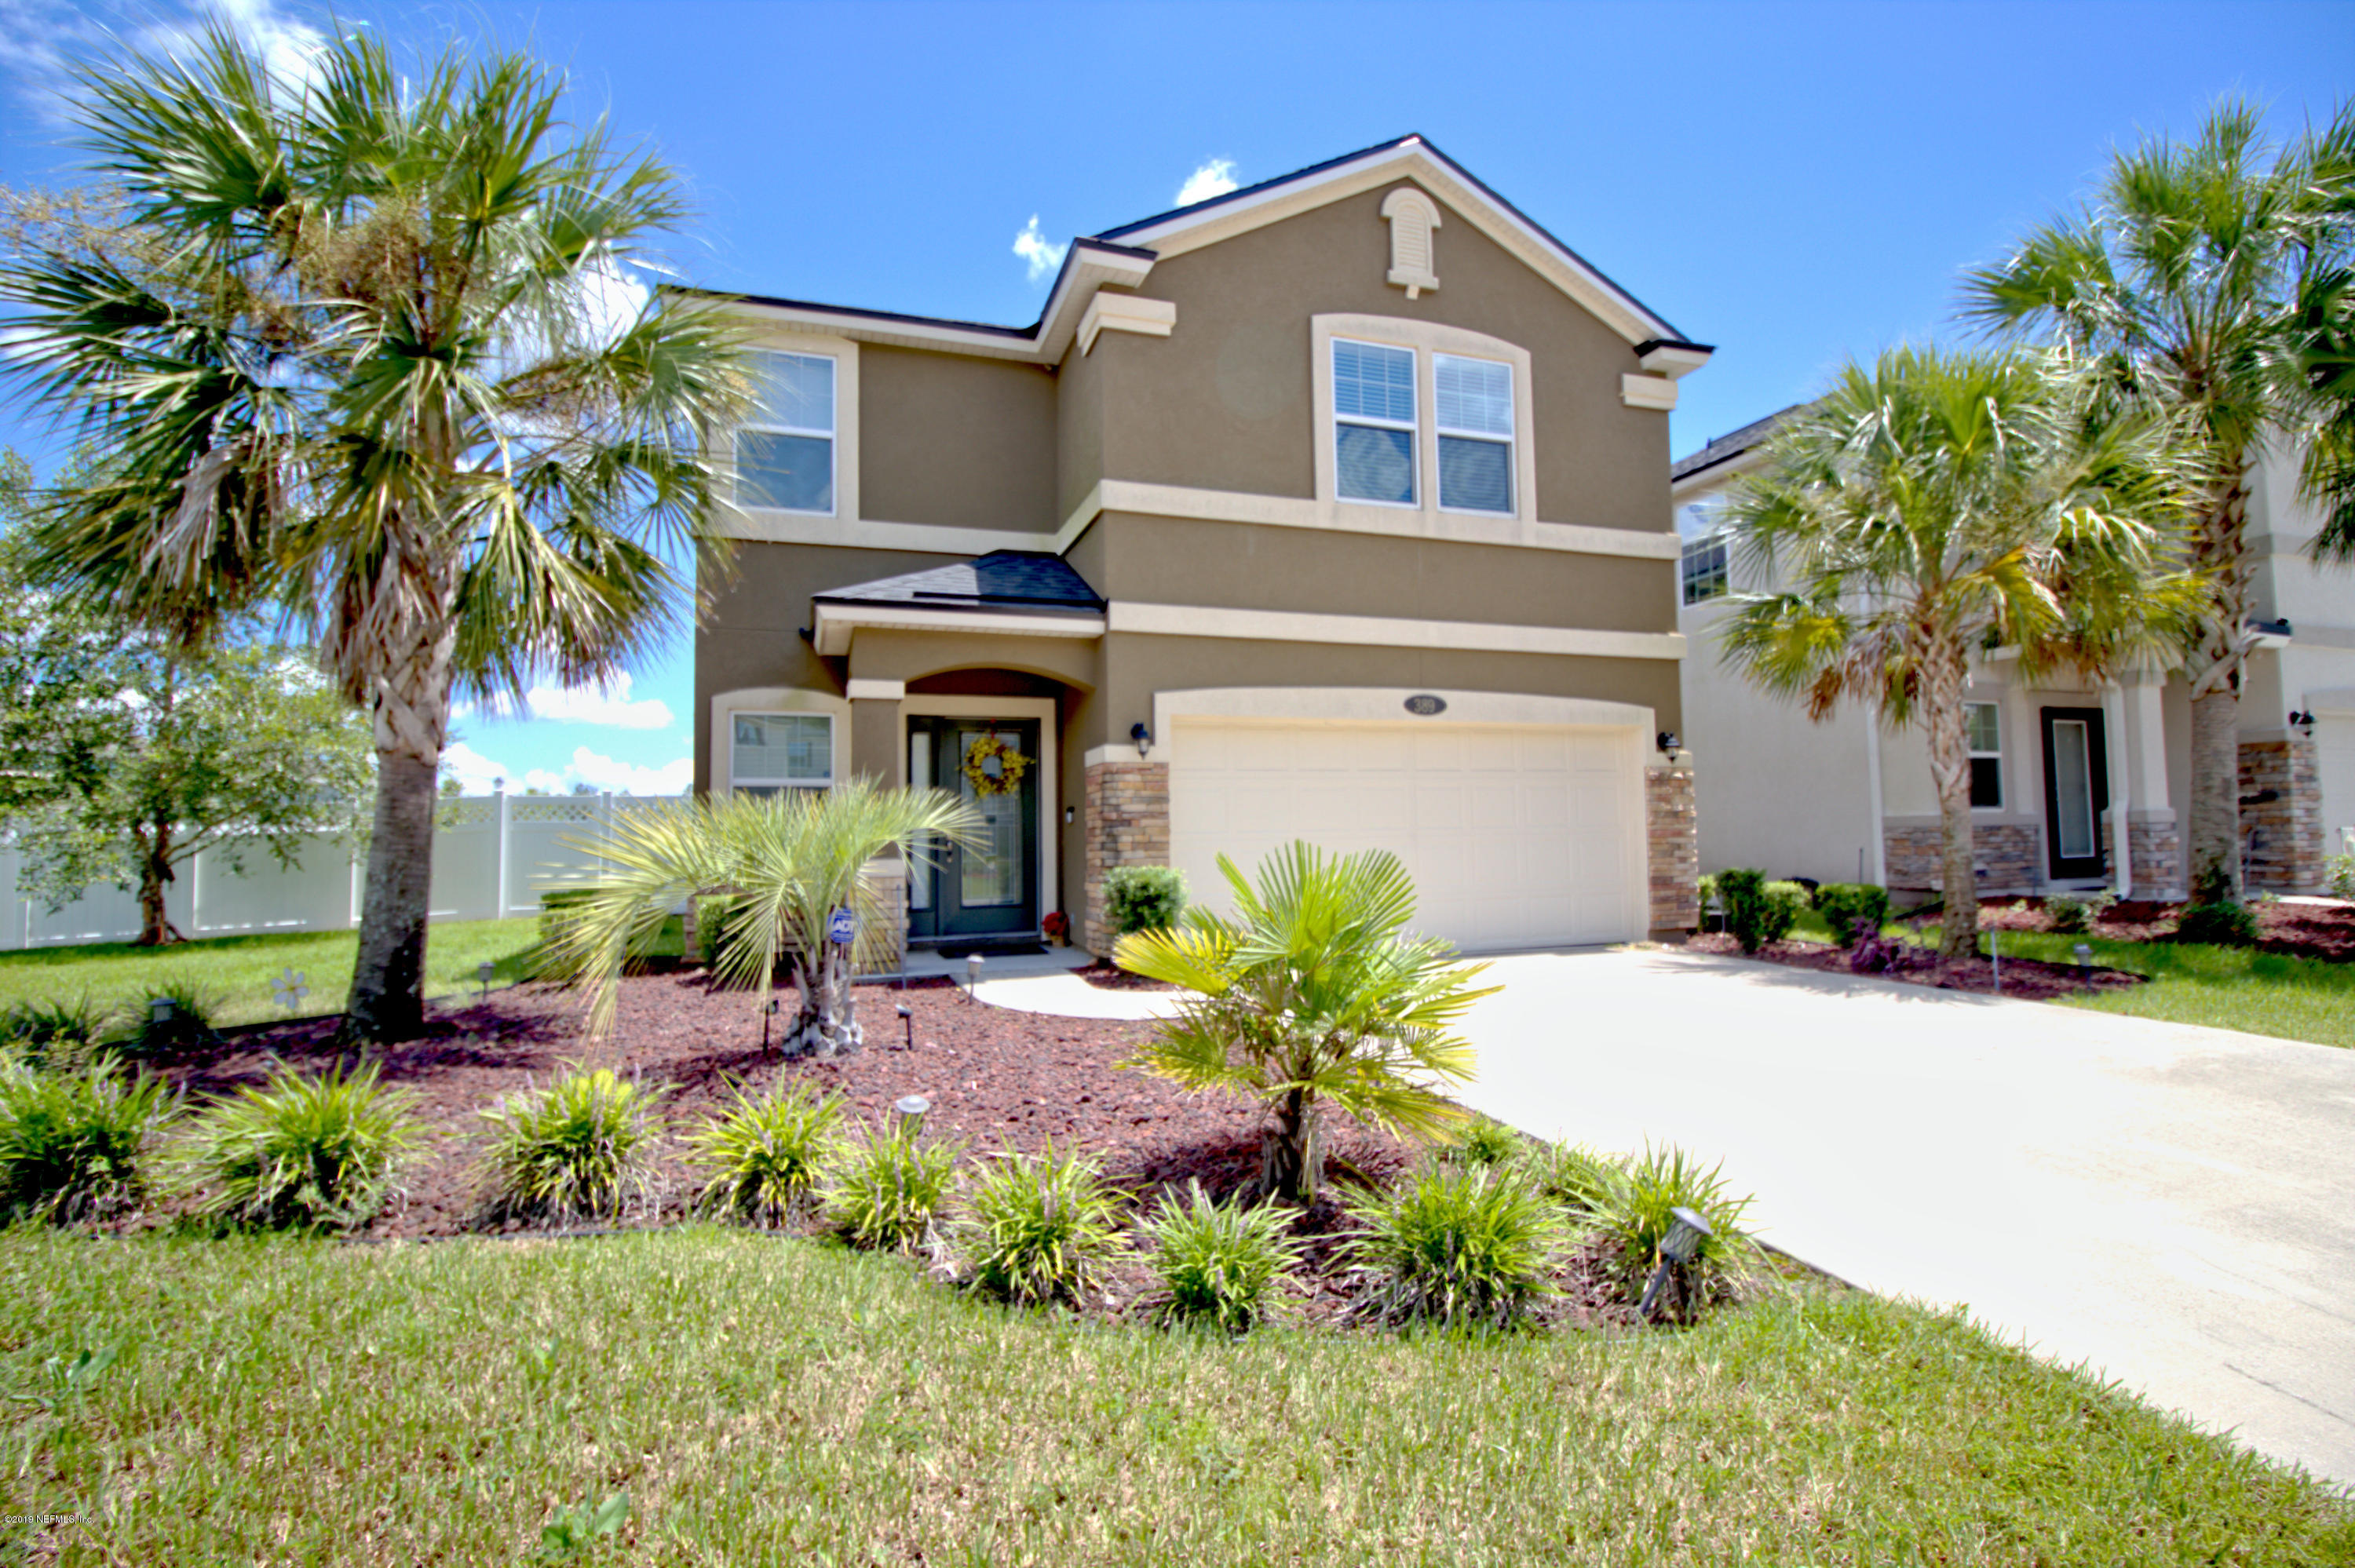 389 FOREST MEADOW, ORANGE PARK, FLORIDA 32065, 3 Bedrooms Bedrooms, ,2 BathroomsBathrooms,Residential - single family,For sale,FOREST MEADOW,1009354